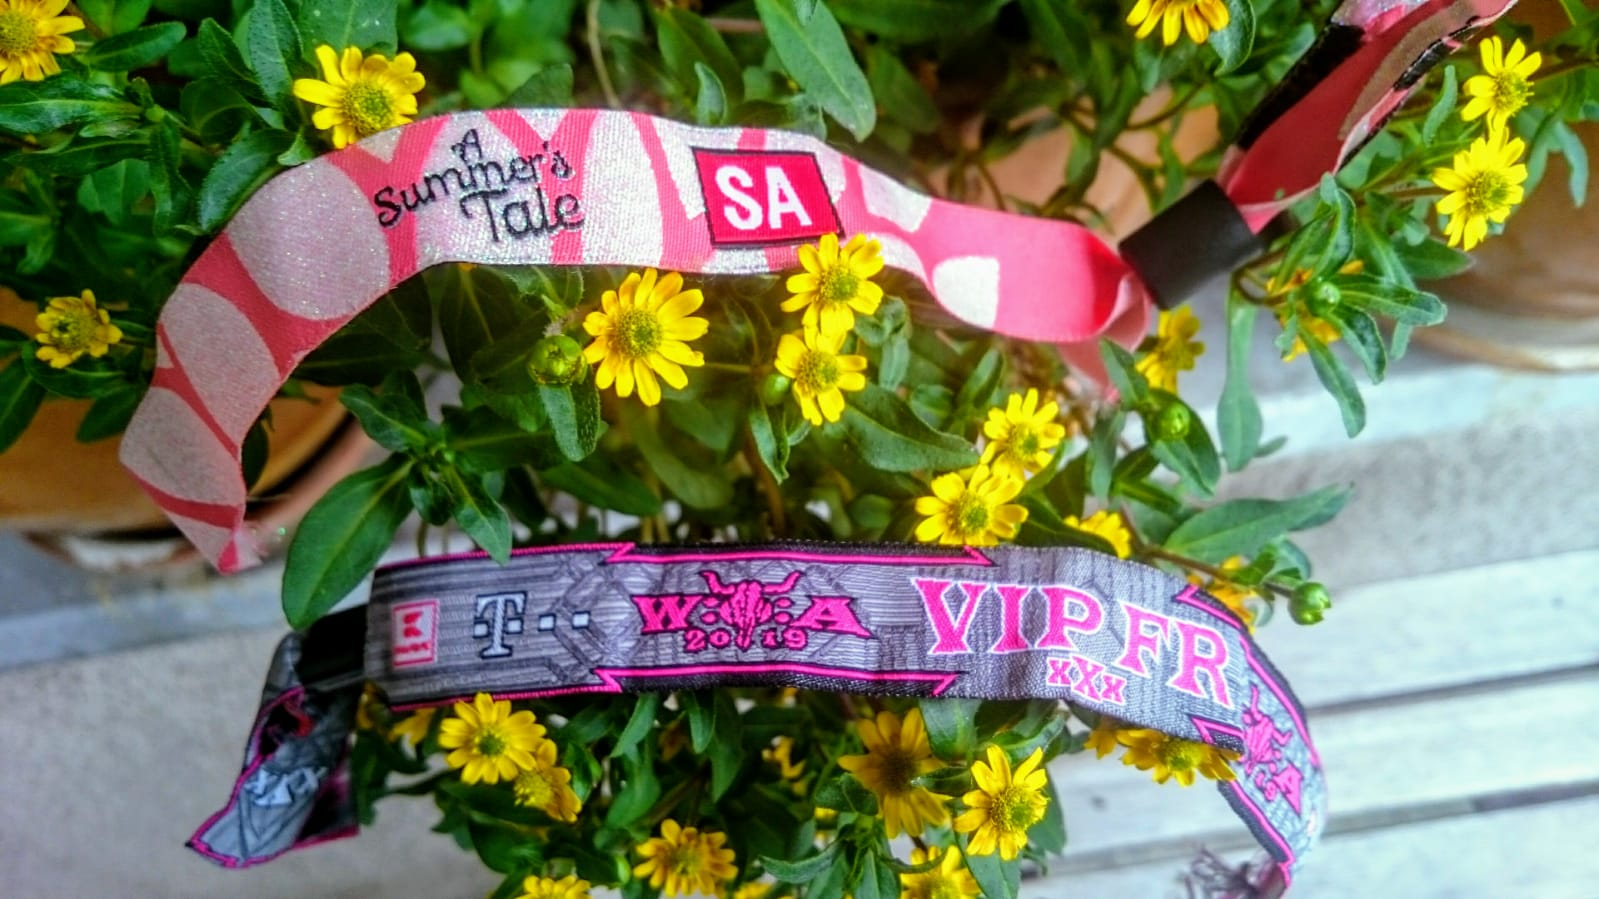 Festival, Open Air, festiva ribbons, Flowers, Biggy Pop, Blog, Wacken, A Summer's Tale, Northgermany, music, pop, Hamburg